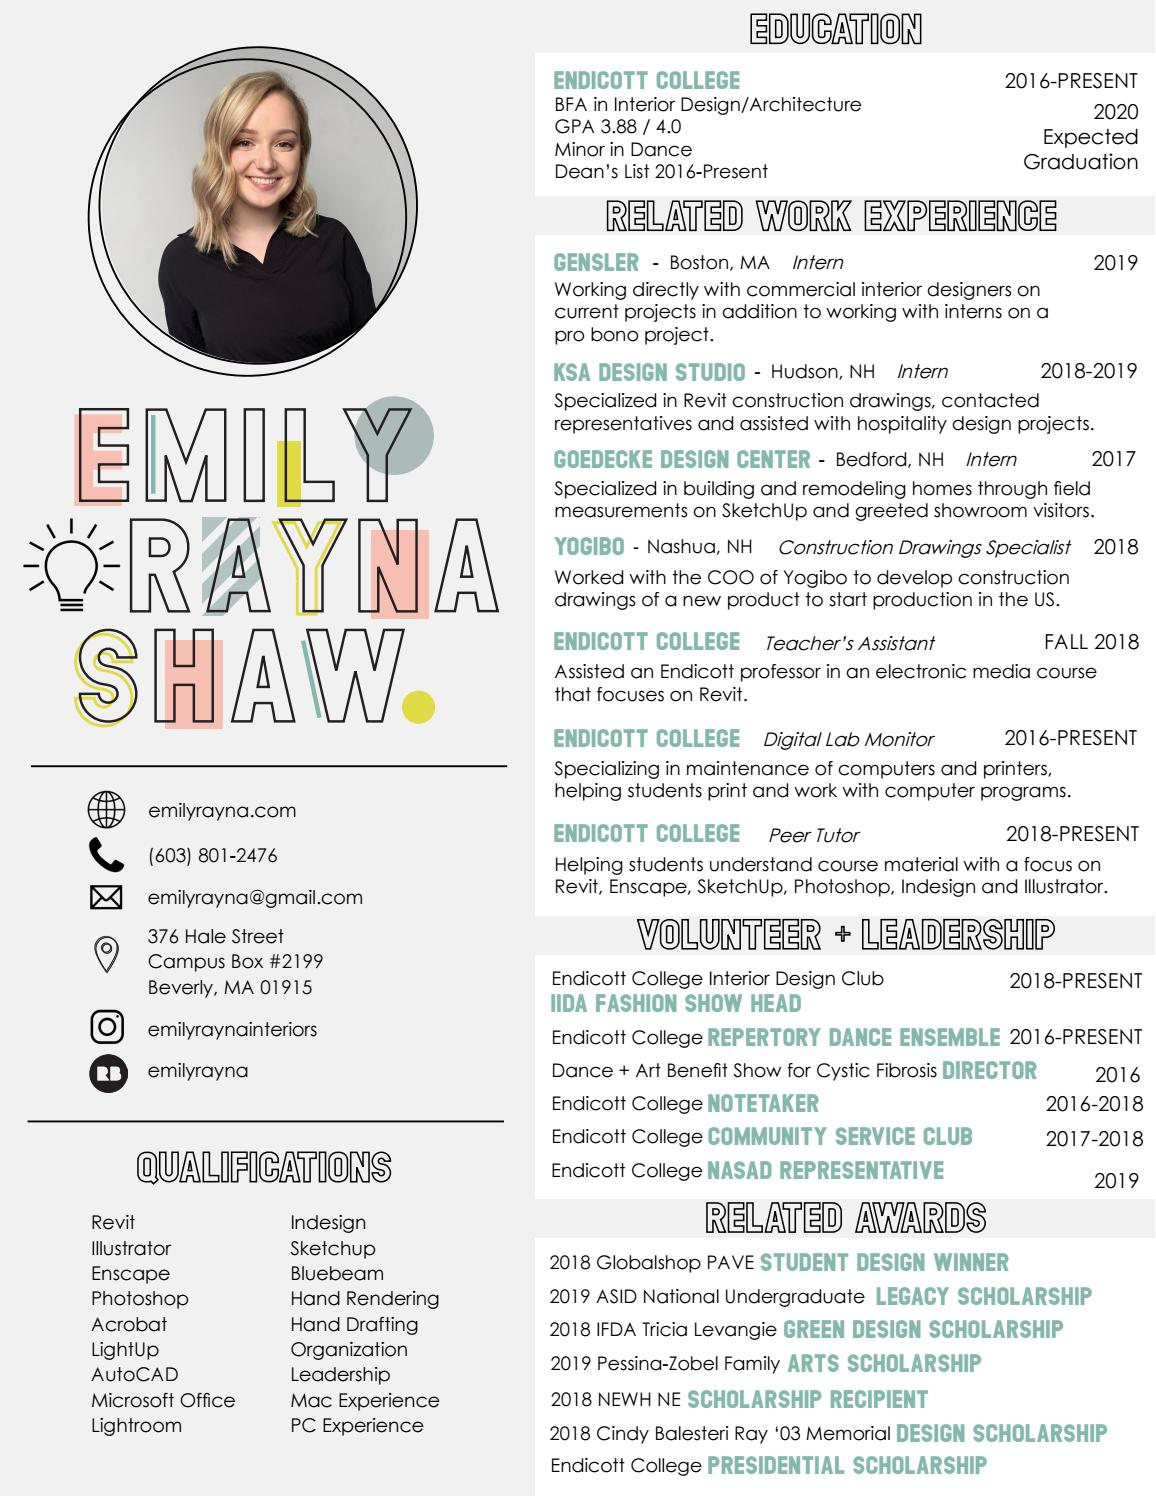 Emily Shaw 2019 Resume by emilyrayna - issuu